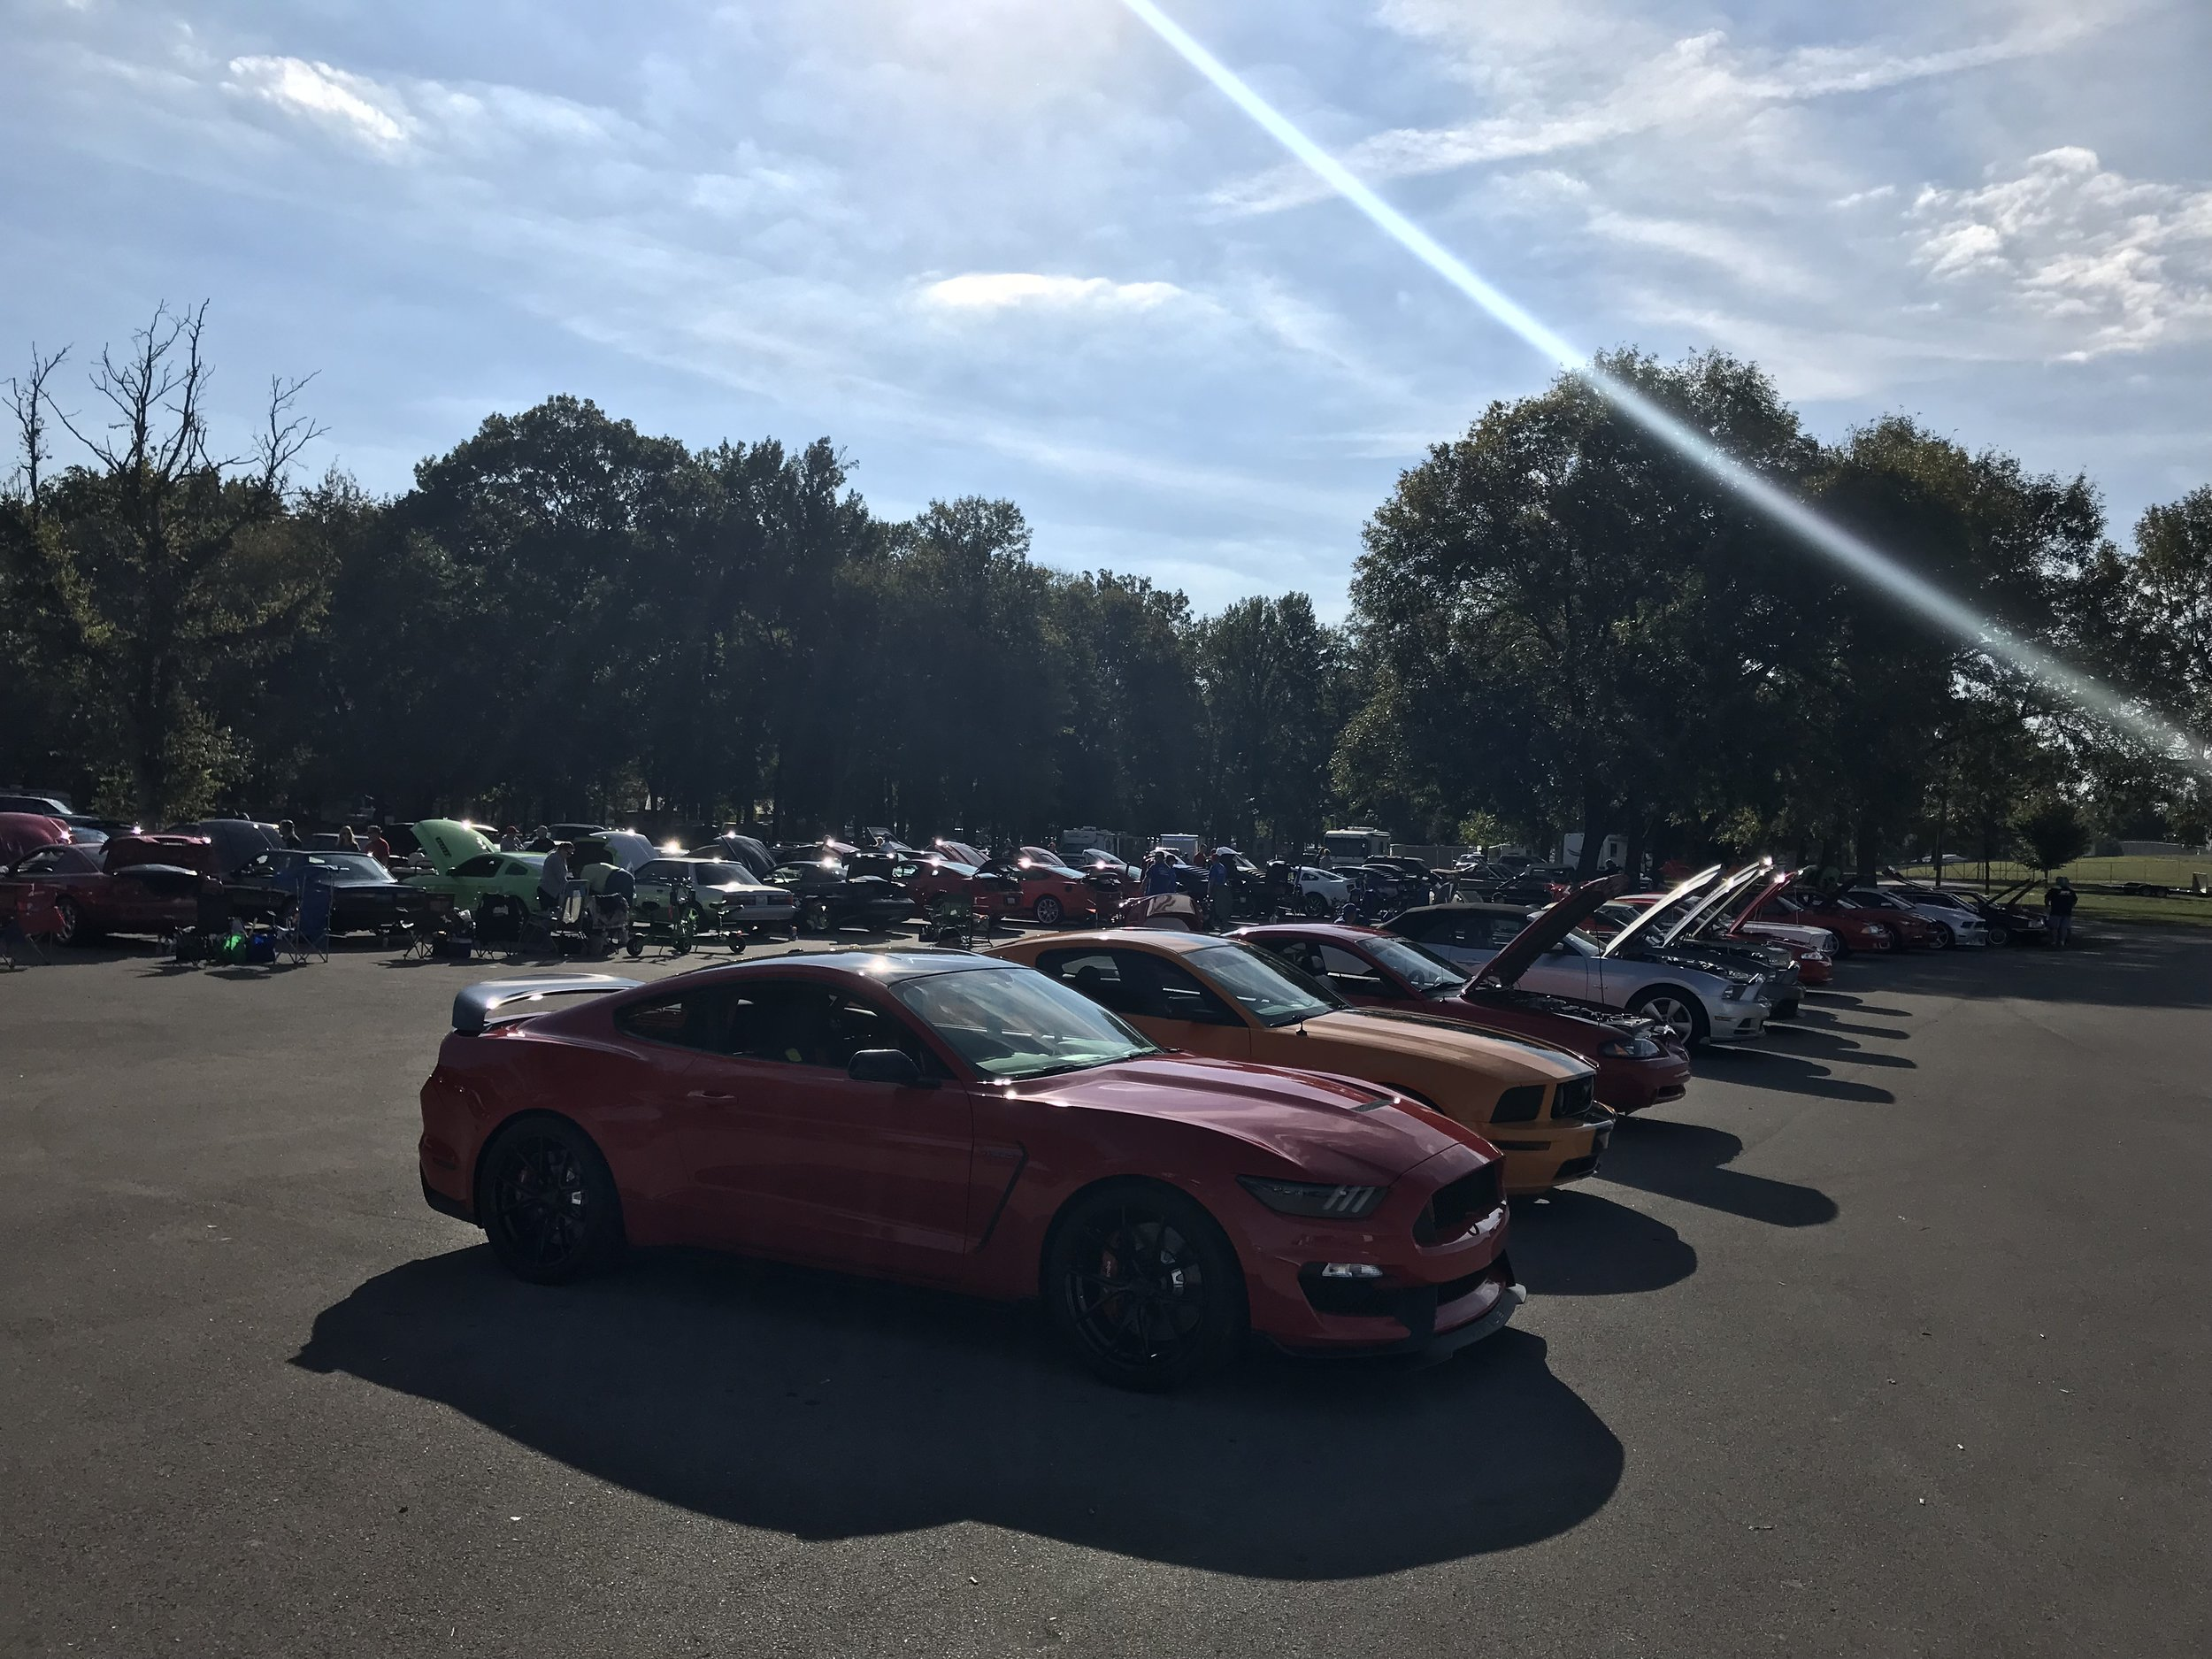 Every Ford vehicle imaginable was on display in the car show. From classics to brand new GT350s.